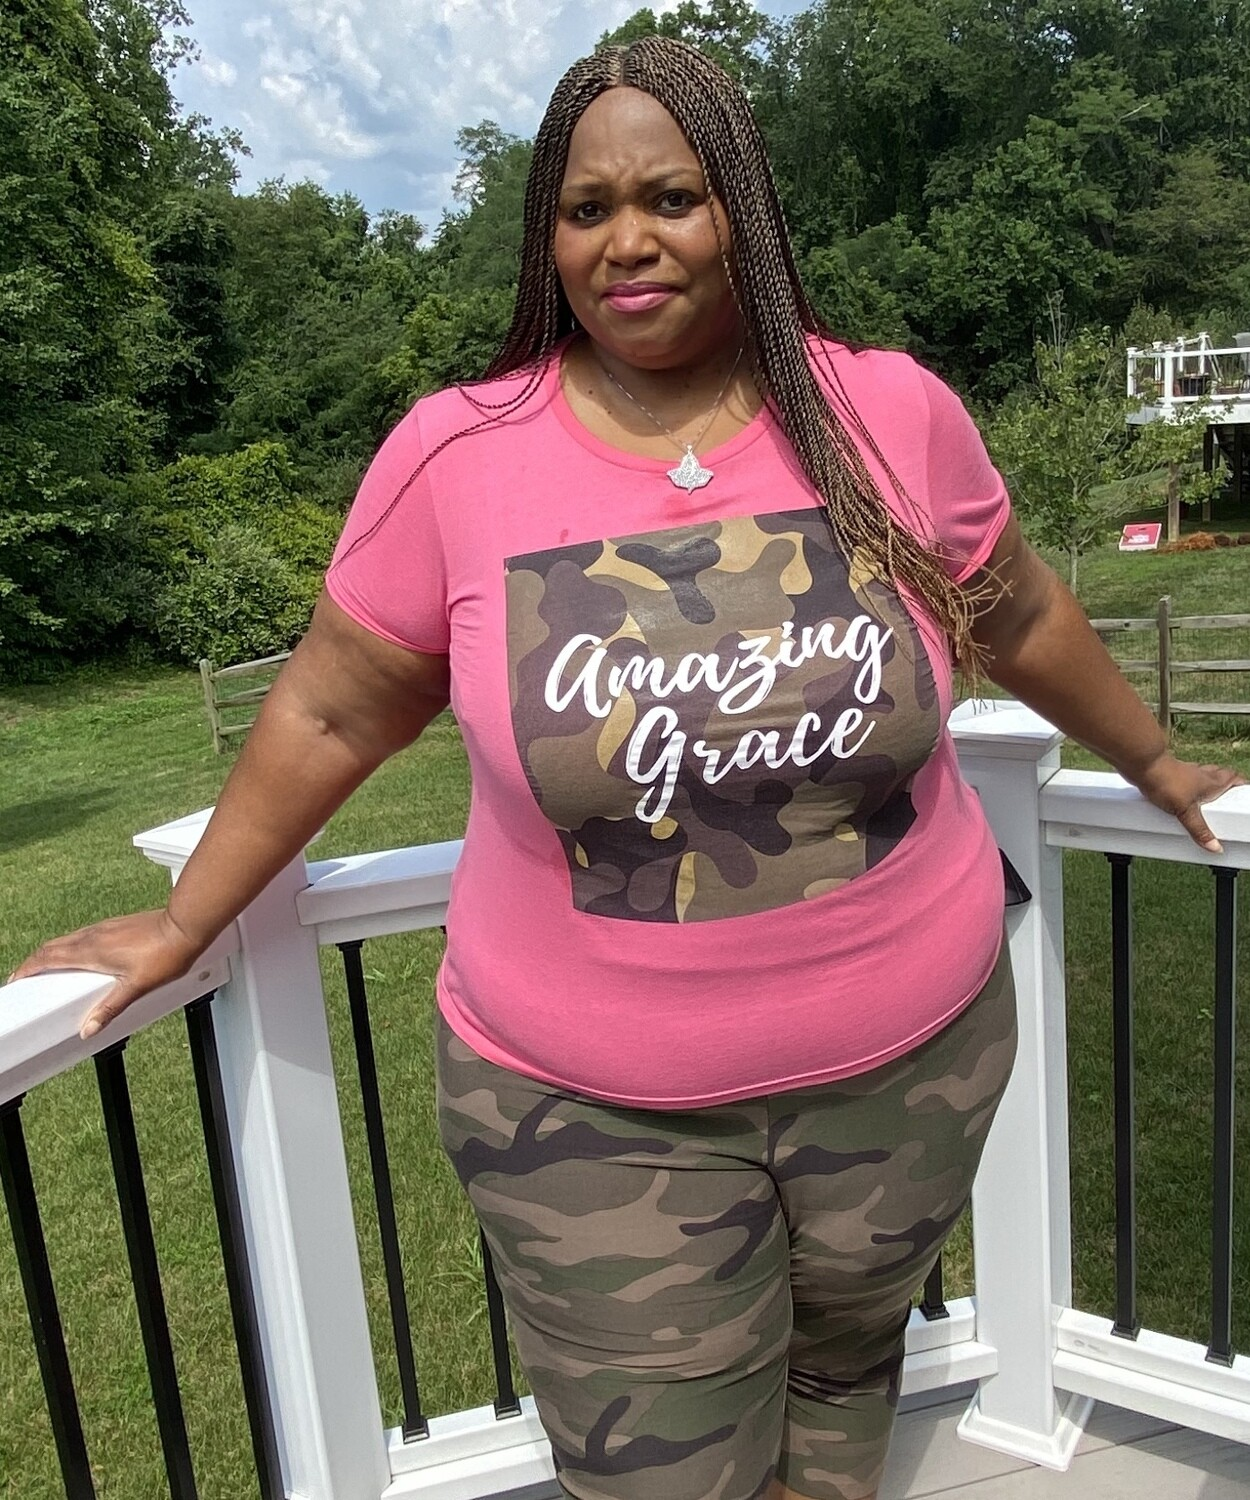 Amazing Grace Women's Tee | Fatigue | Pink T-Shirt